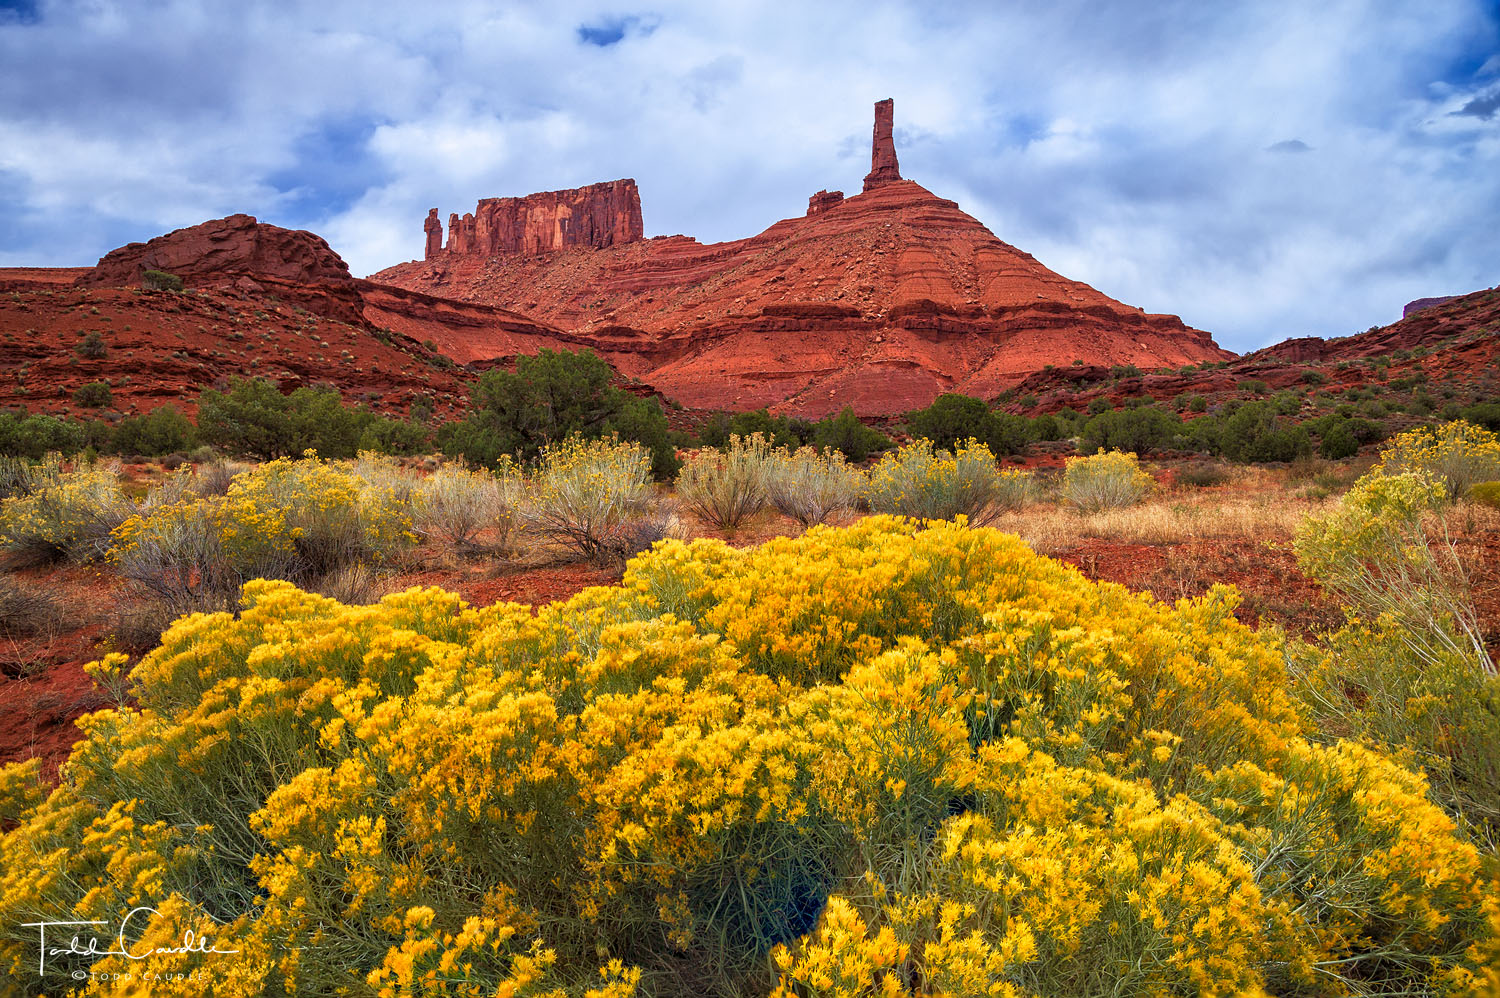 Rabbitbrush proliferates below Castleton Tower and the Priest and Nuns formation in Castle Valley, not far from Moab.